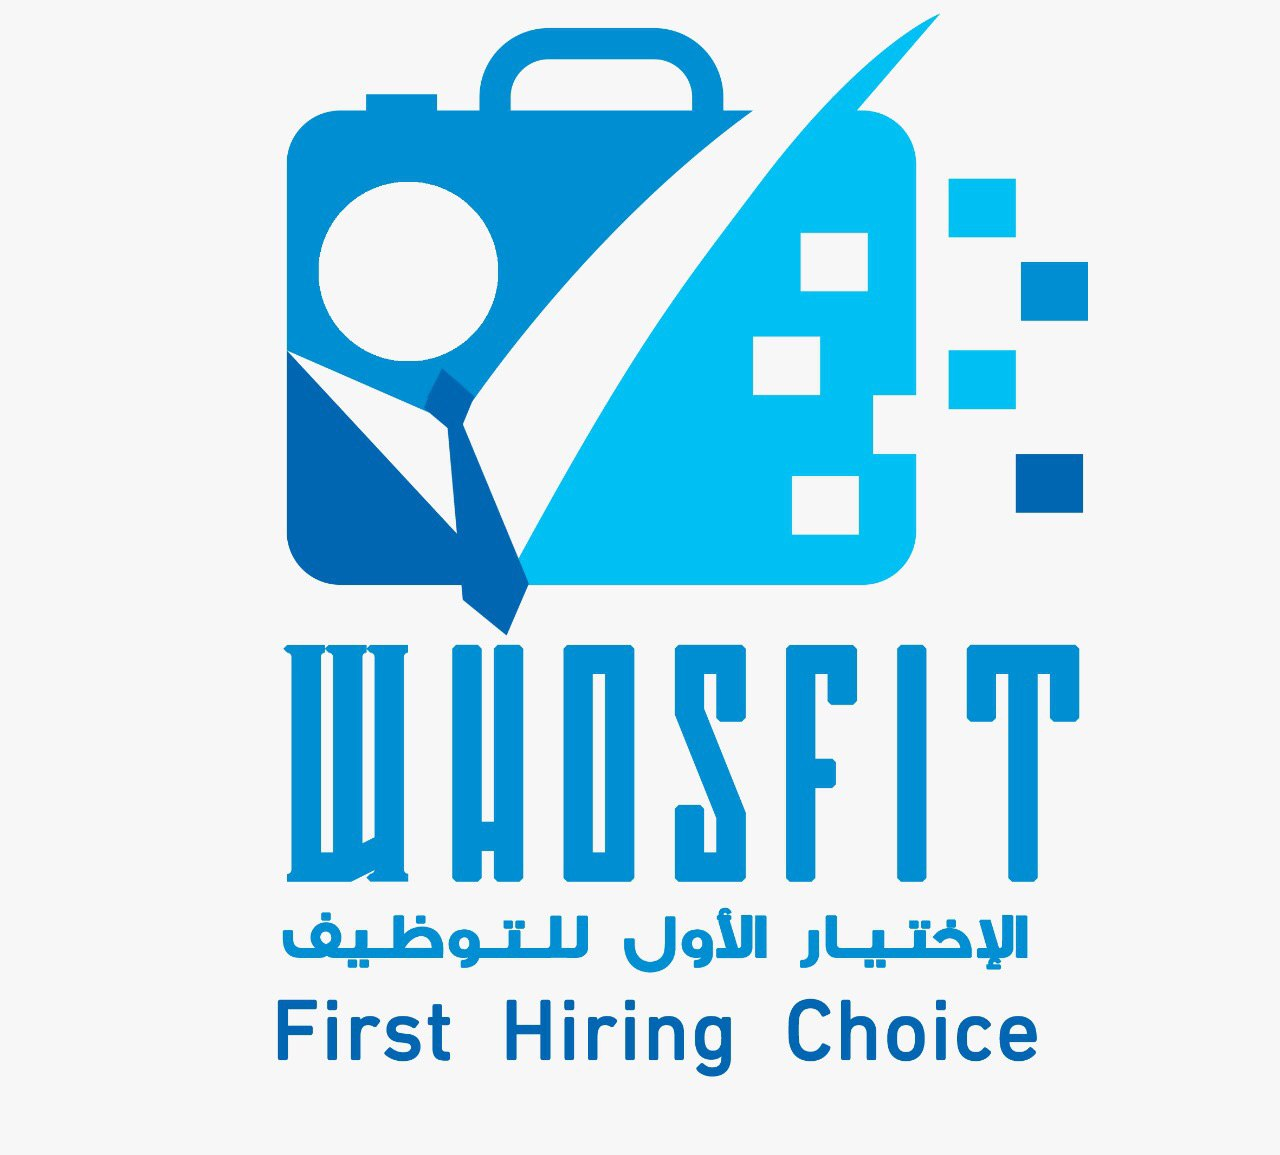 Whosfit.co